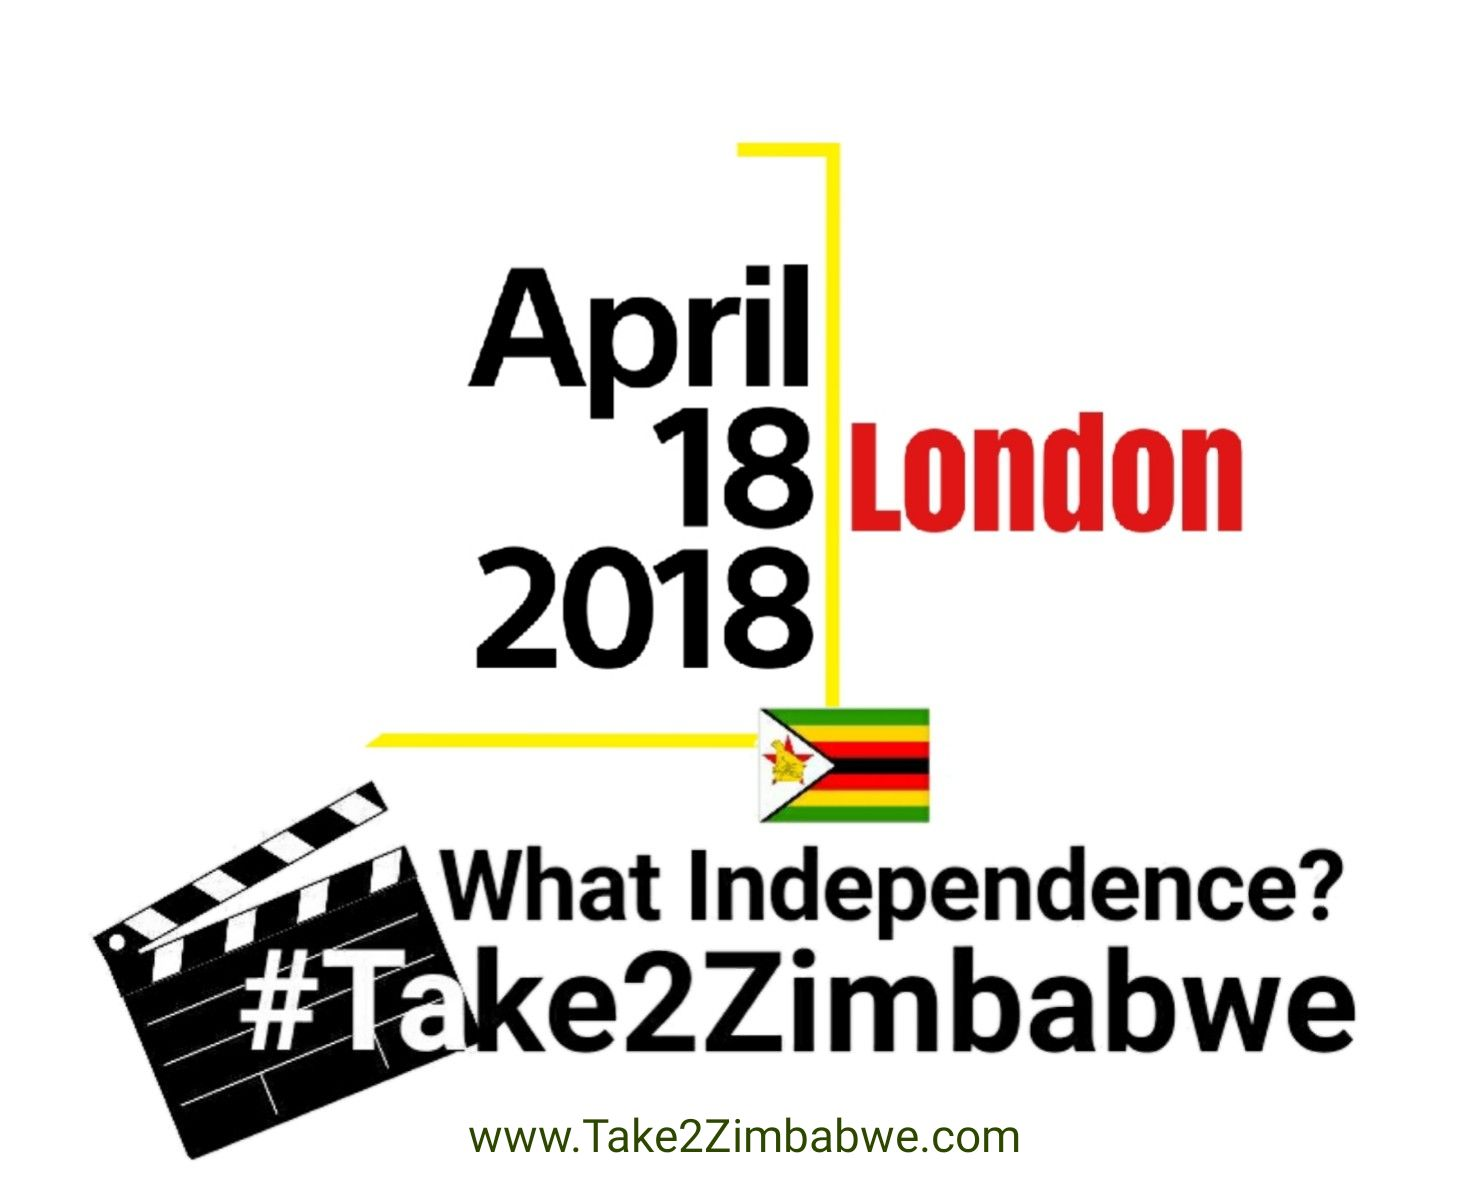 Take2Zimbabwe - What Independence